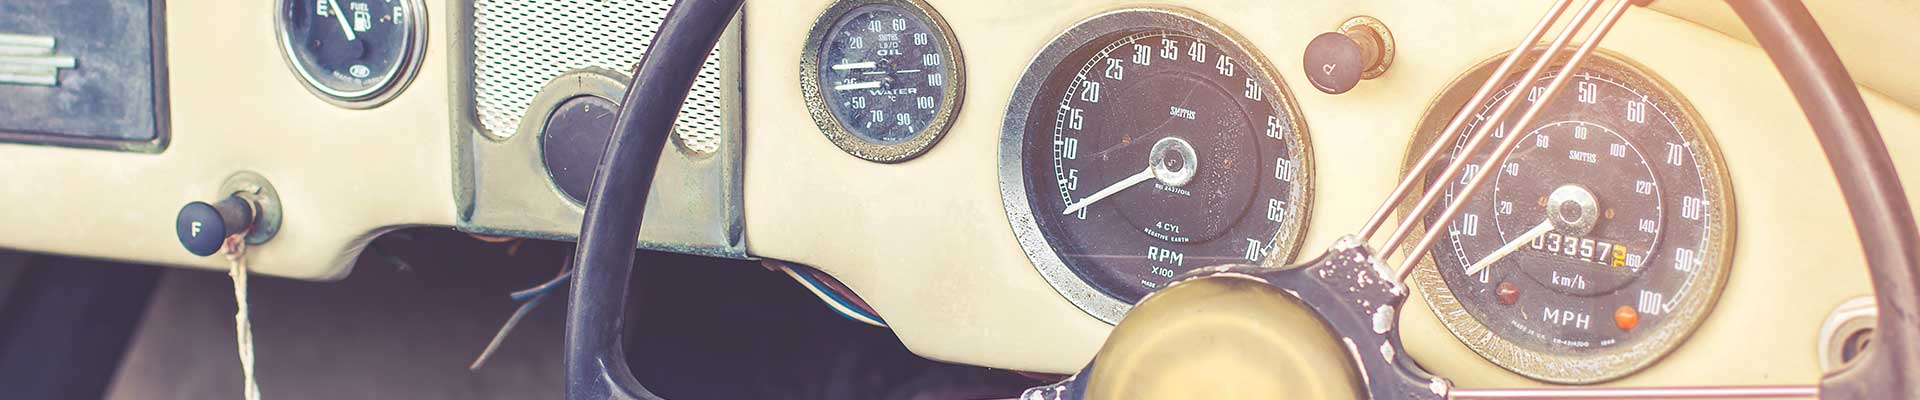 classic-car-manufacturers-dashboard